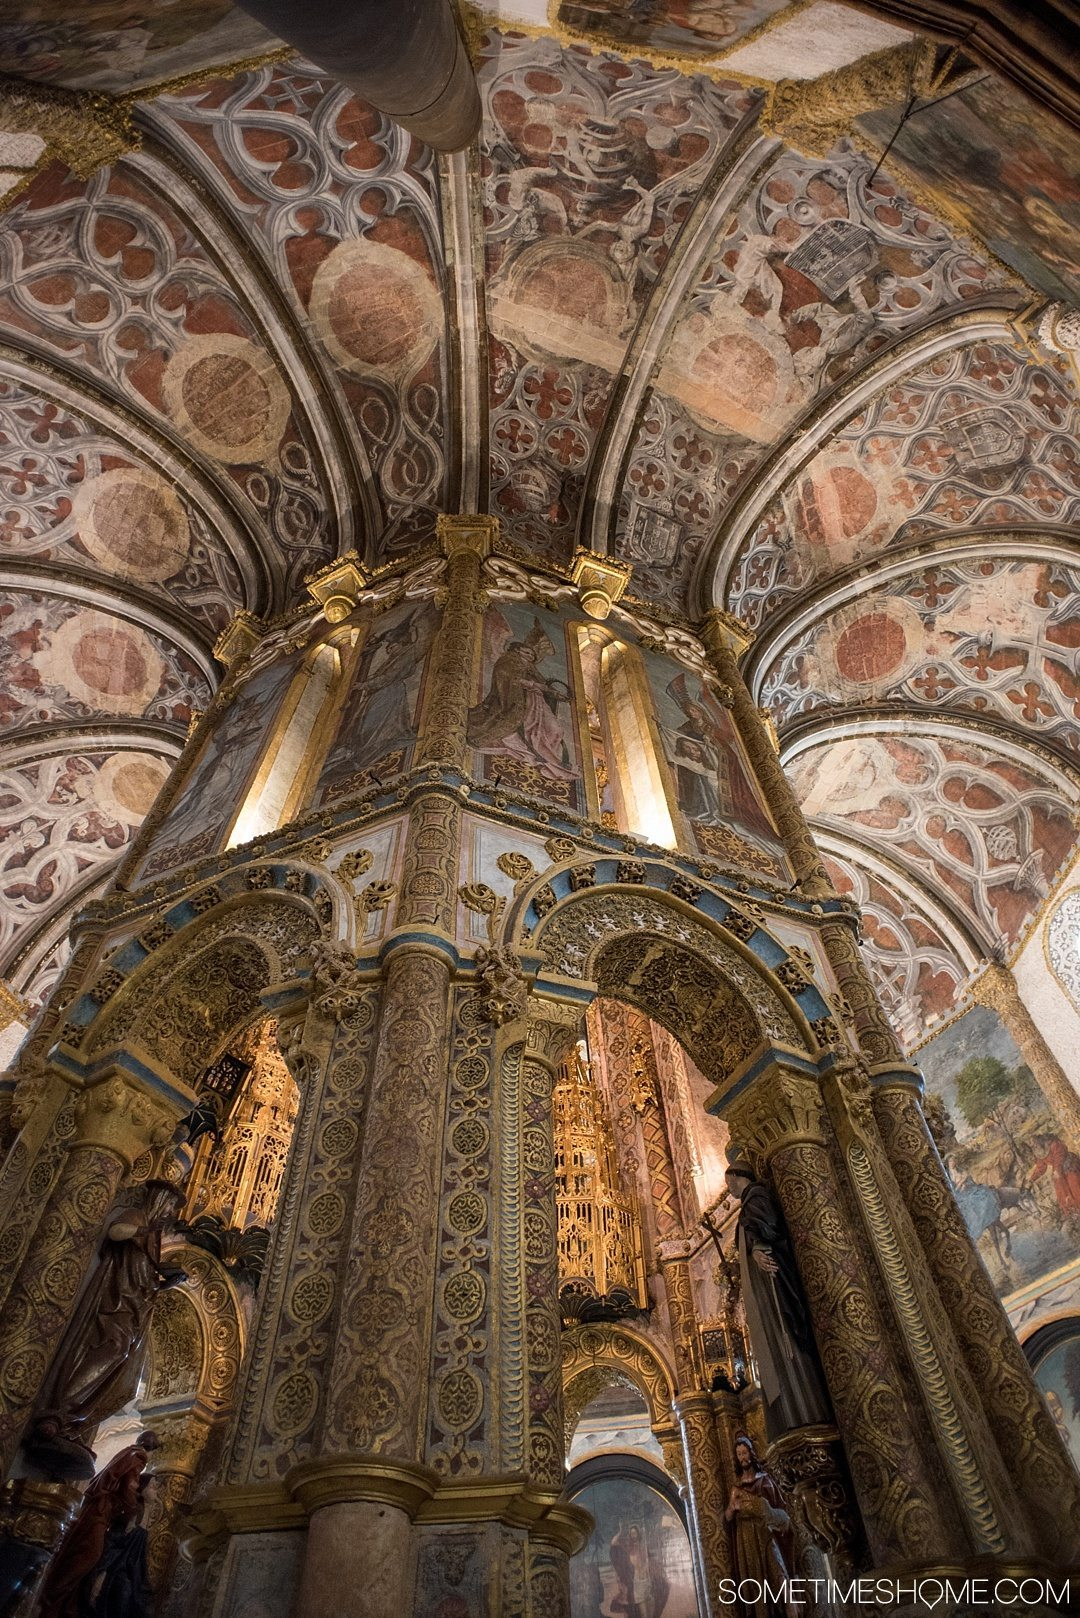 Amazing Day Trip from Lisbon to Tomar Portugal. Photos, tips and advice on Sometimes Home travel blog. Picture the interior of Castelo de Tomar and Convent of Christ.